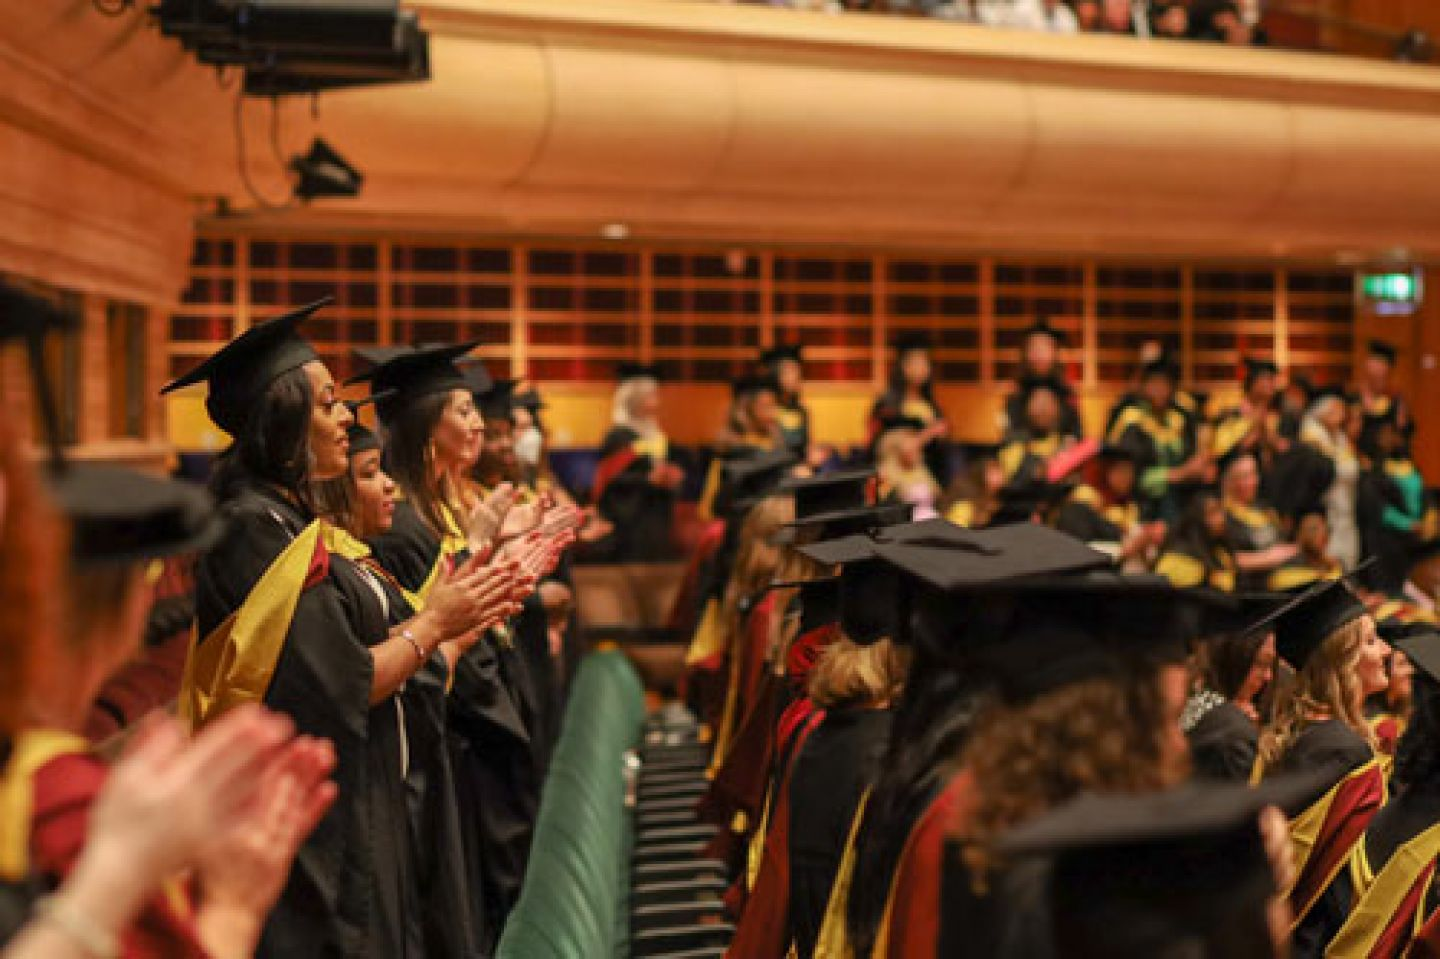 City graduates applaud each other in the auditorium at The Barbican Centre.